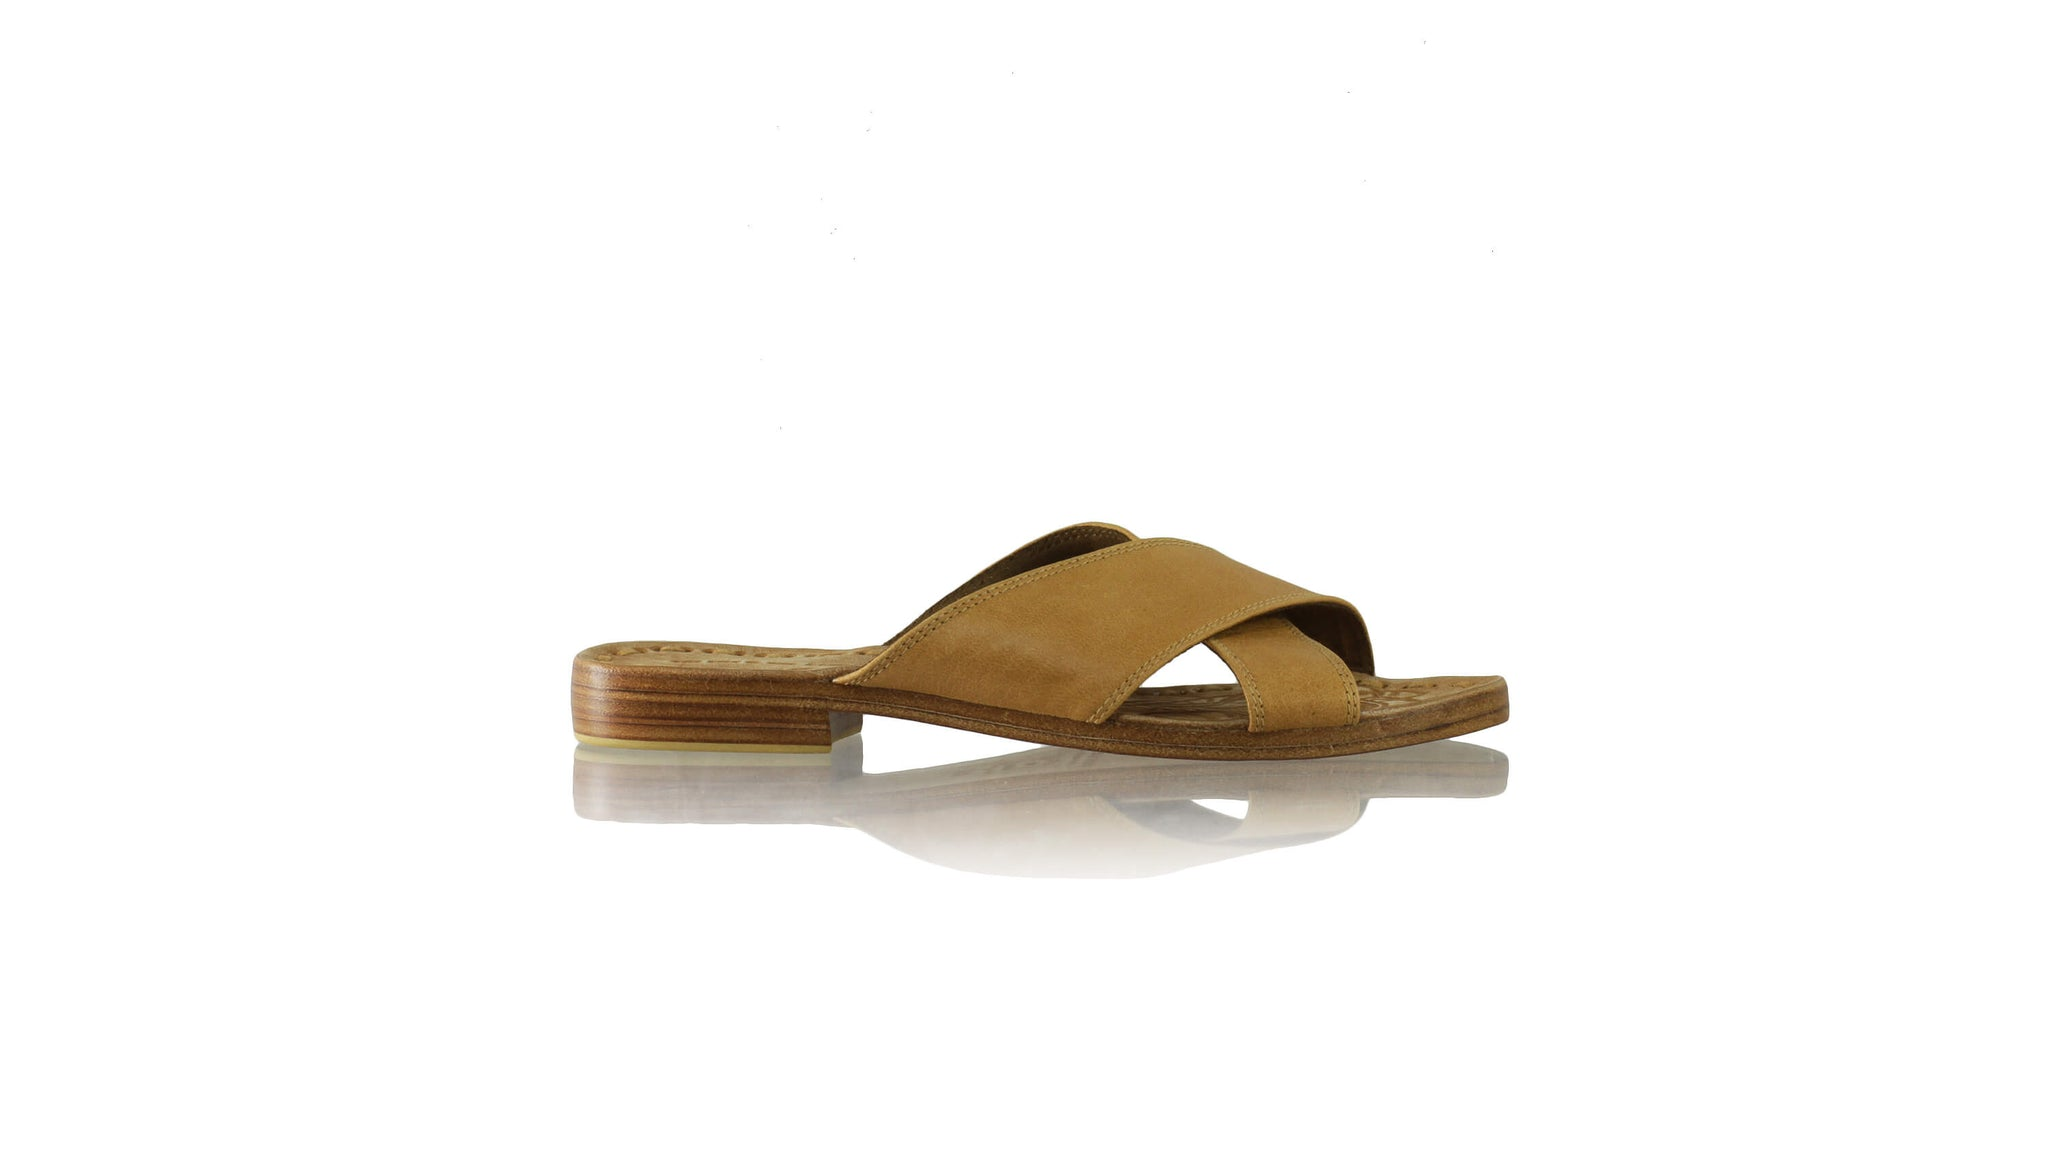 Leather-shoes-Ines 20mm Flat - Camel Brown-sandals flat-NILUH DJELANTIK